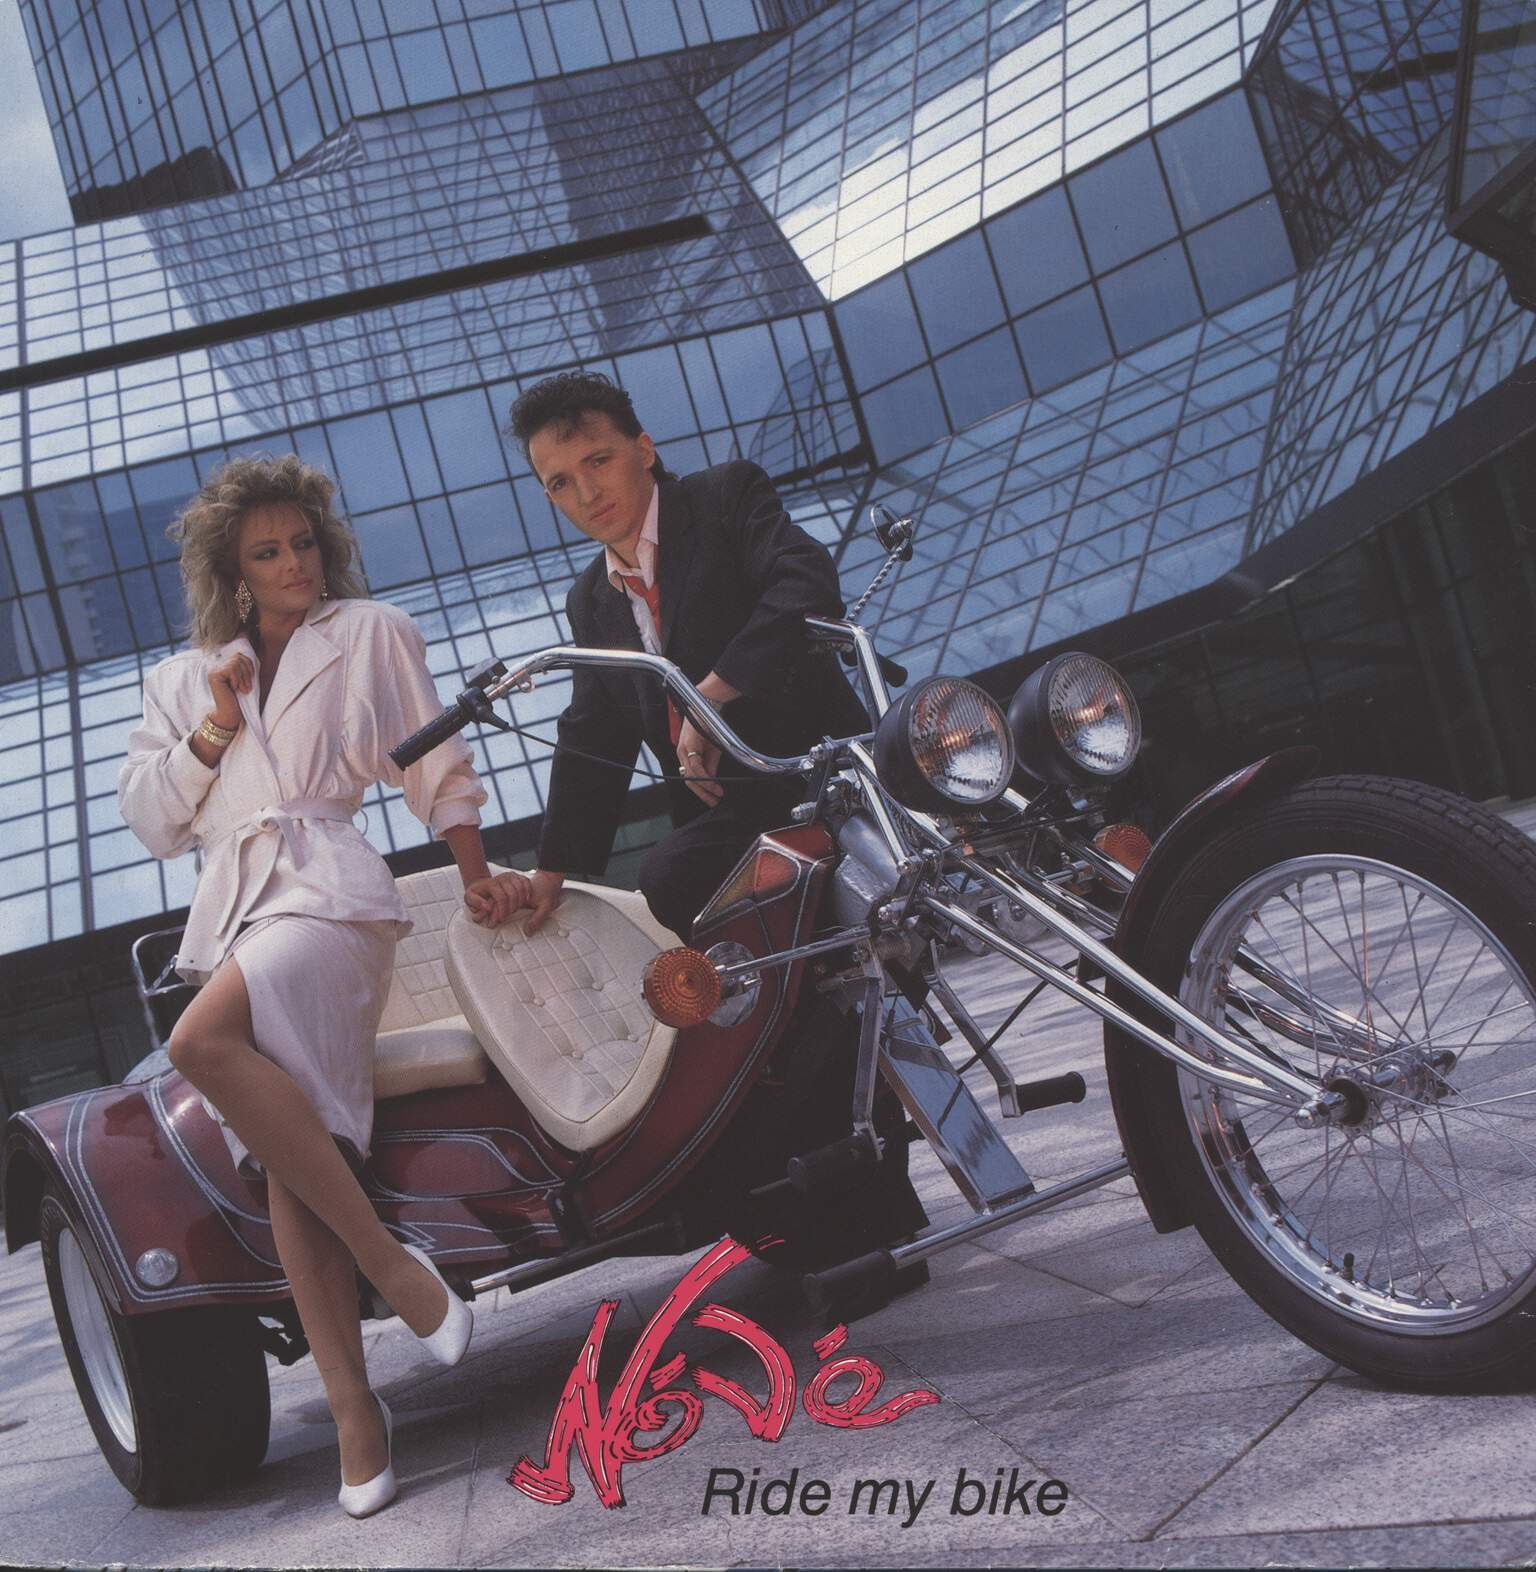 "Nóvé: Ride My Bike, 12"" Maxi Single (Vinyl)"